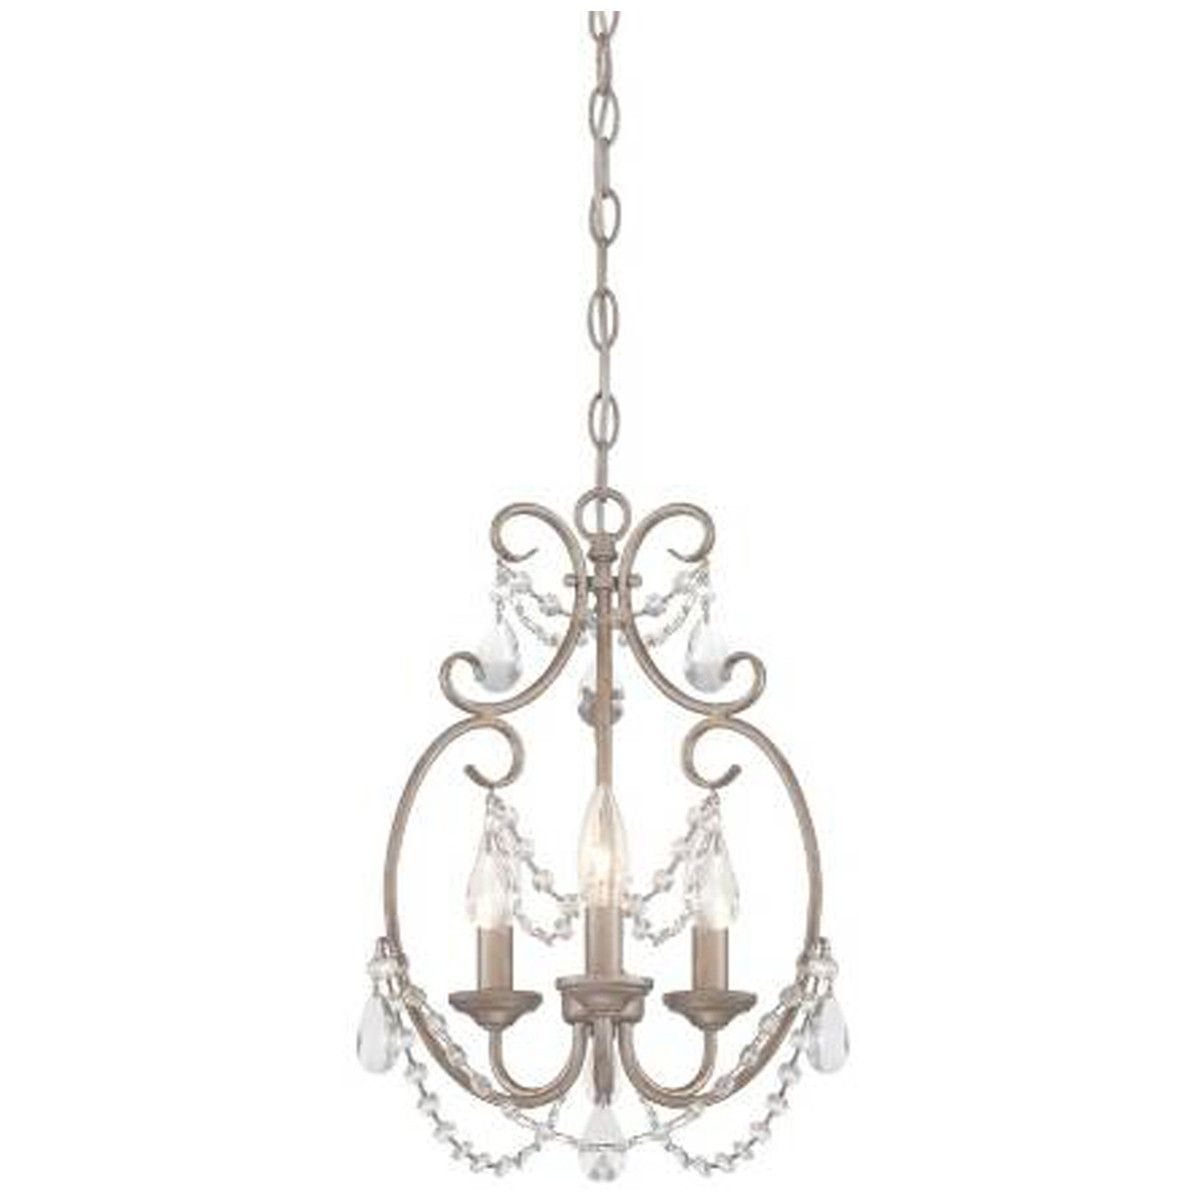 Dahlia light mini chandelier in aged platinum with clear faceted